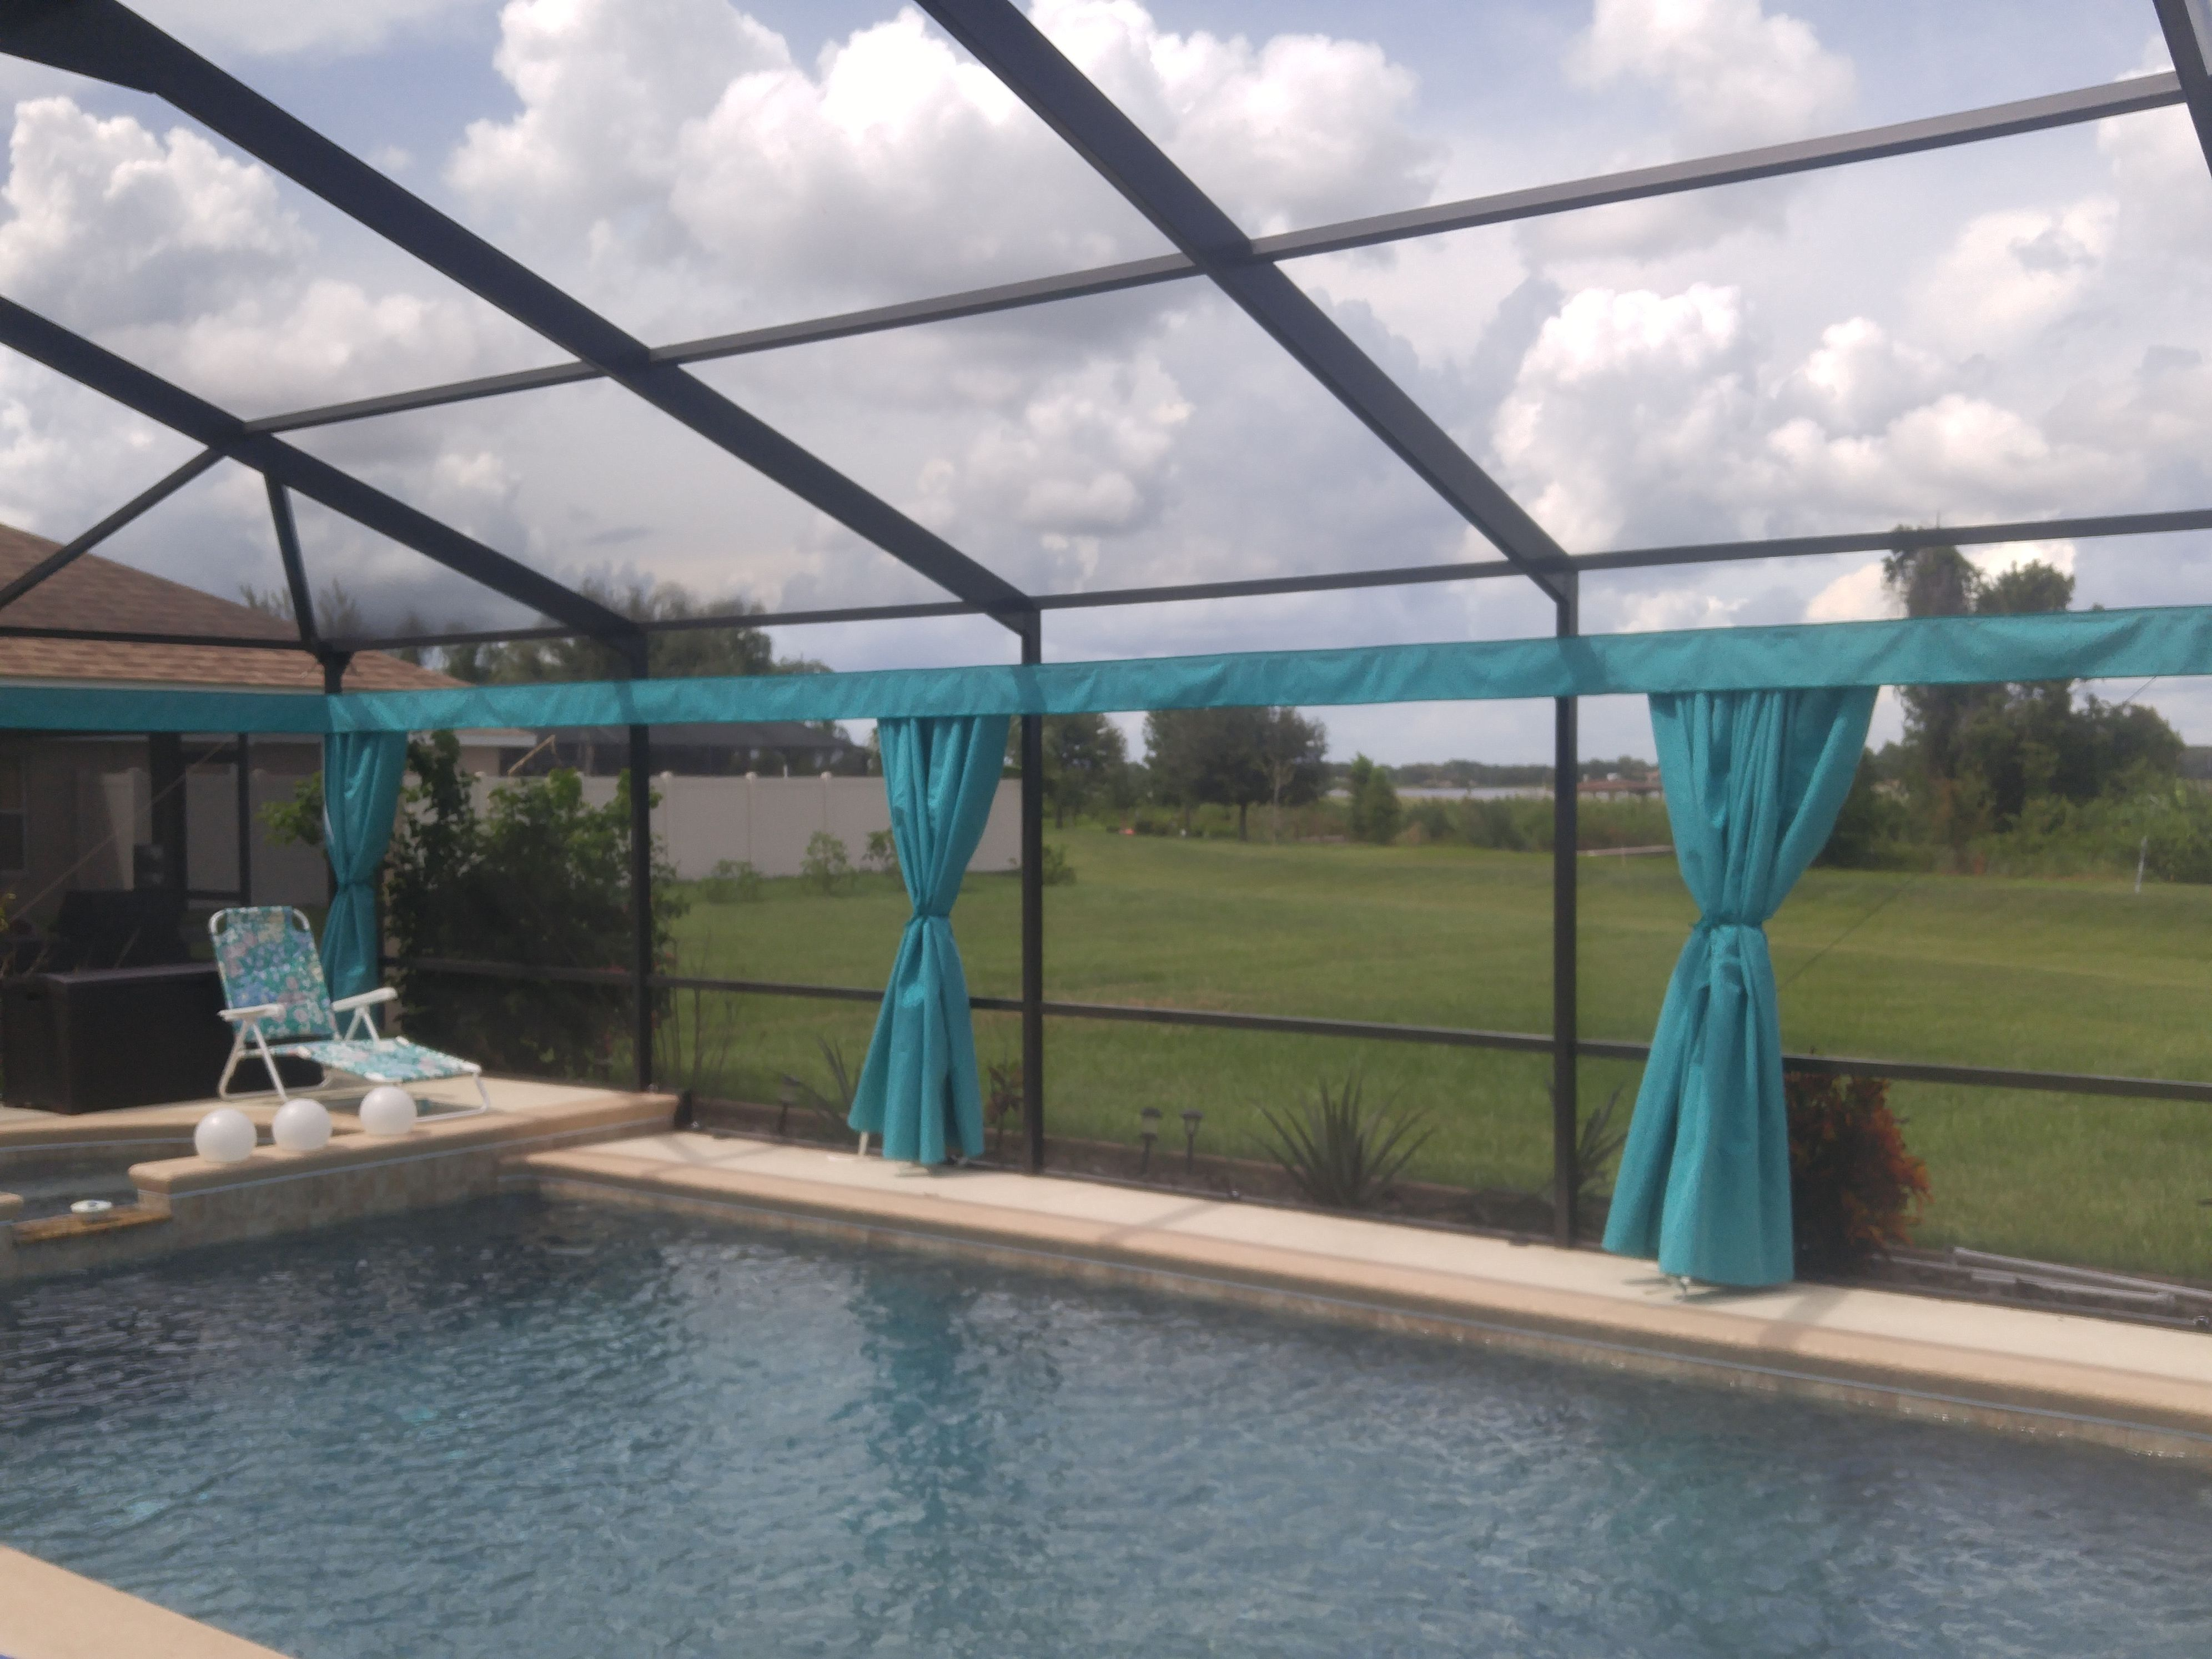 Pin By Privacy On Demand Inc On Outdoor Privacy Curtains Outdoor Privacy Pool Screen Enclosure Outdoor Curtains